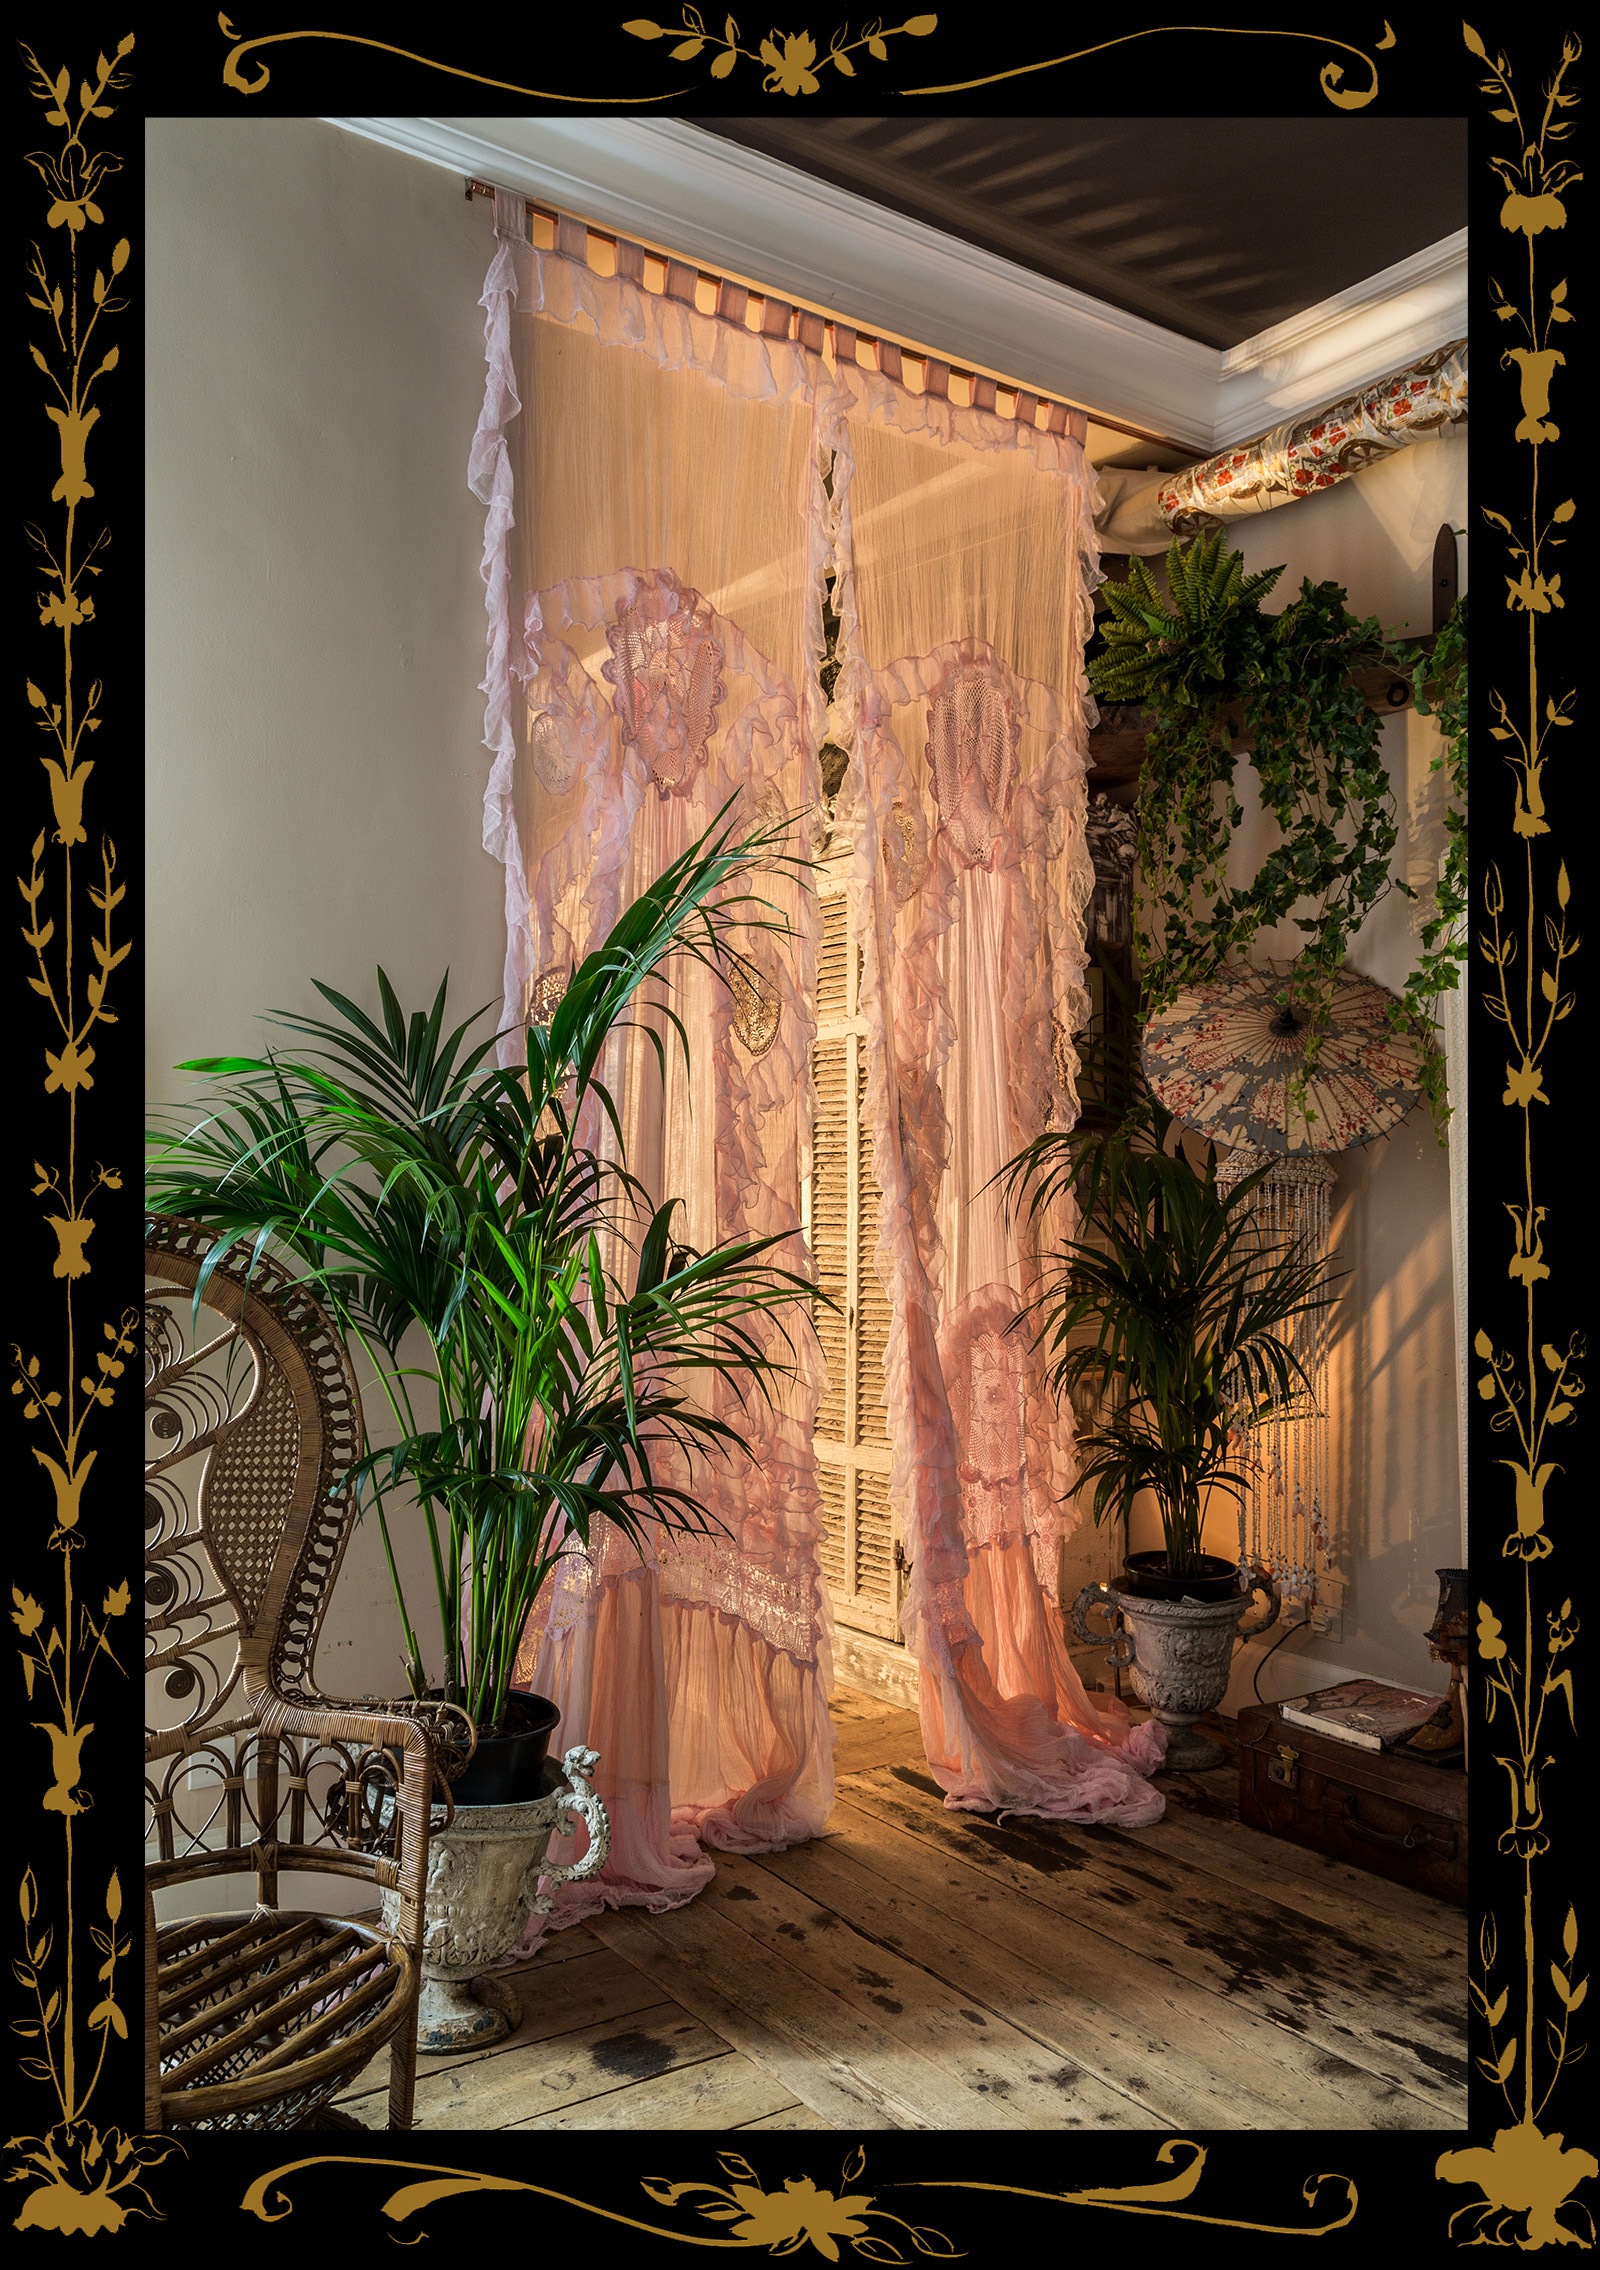 The House Gowns are designed as architectural pieces for your home. They can be used on windows or to replace doors and indeed walls to divide rooms and around Ones bed suspended from the ceiling like a Four poster Bed without the need for posts.  These have been designed so one can live in a free-flowing romantic space. Each Gown is handmade with love using muslin appliquéd with vintage lace, then hand-dyed to vintage colours. They are Bohemian, Seductive, exquisite and mysterious.  House Gowns are made to order to any size.